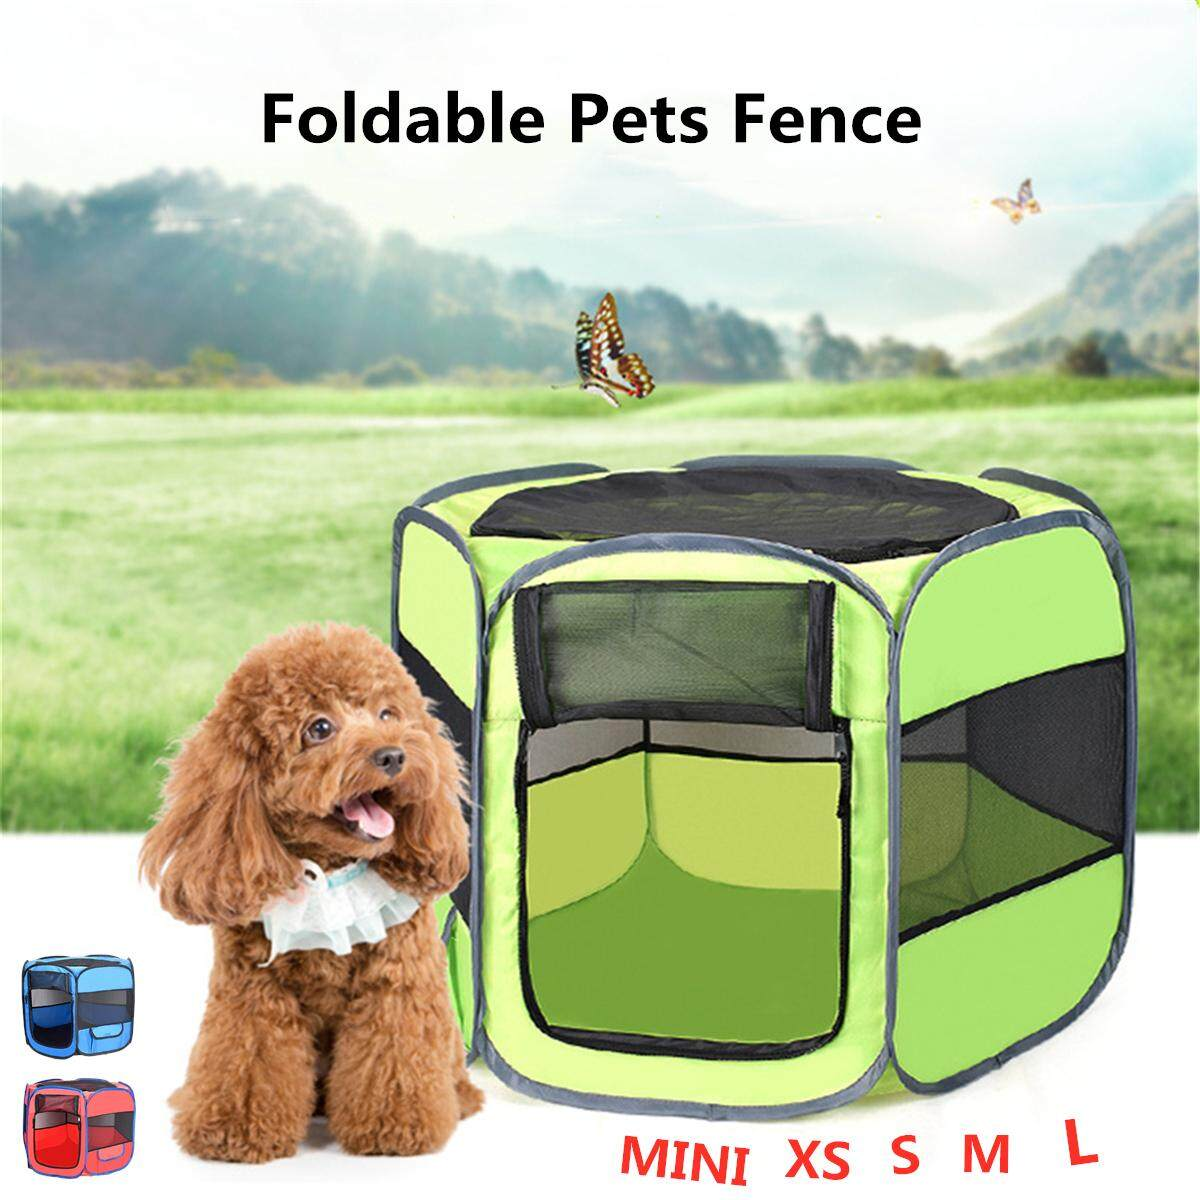 Large Dog Cat Pet Tent Cage Folding Kennel Puppy Playpen House Bed Fence Cage Blue Mini By Autoleader.